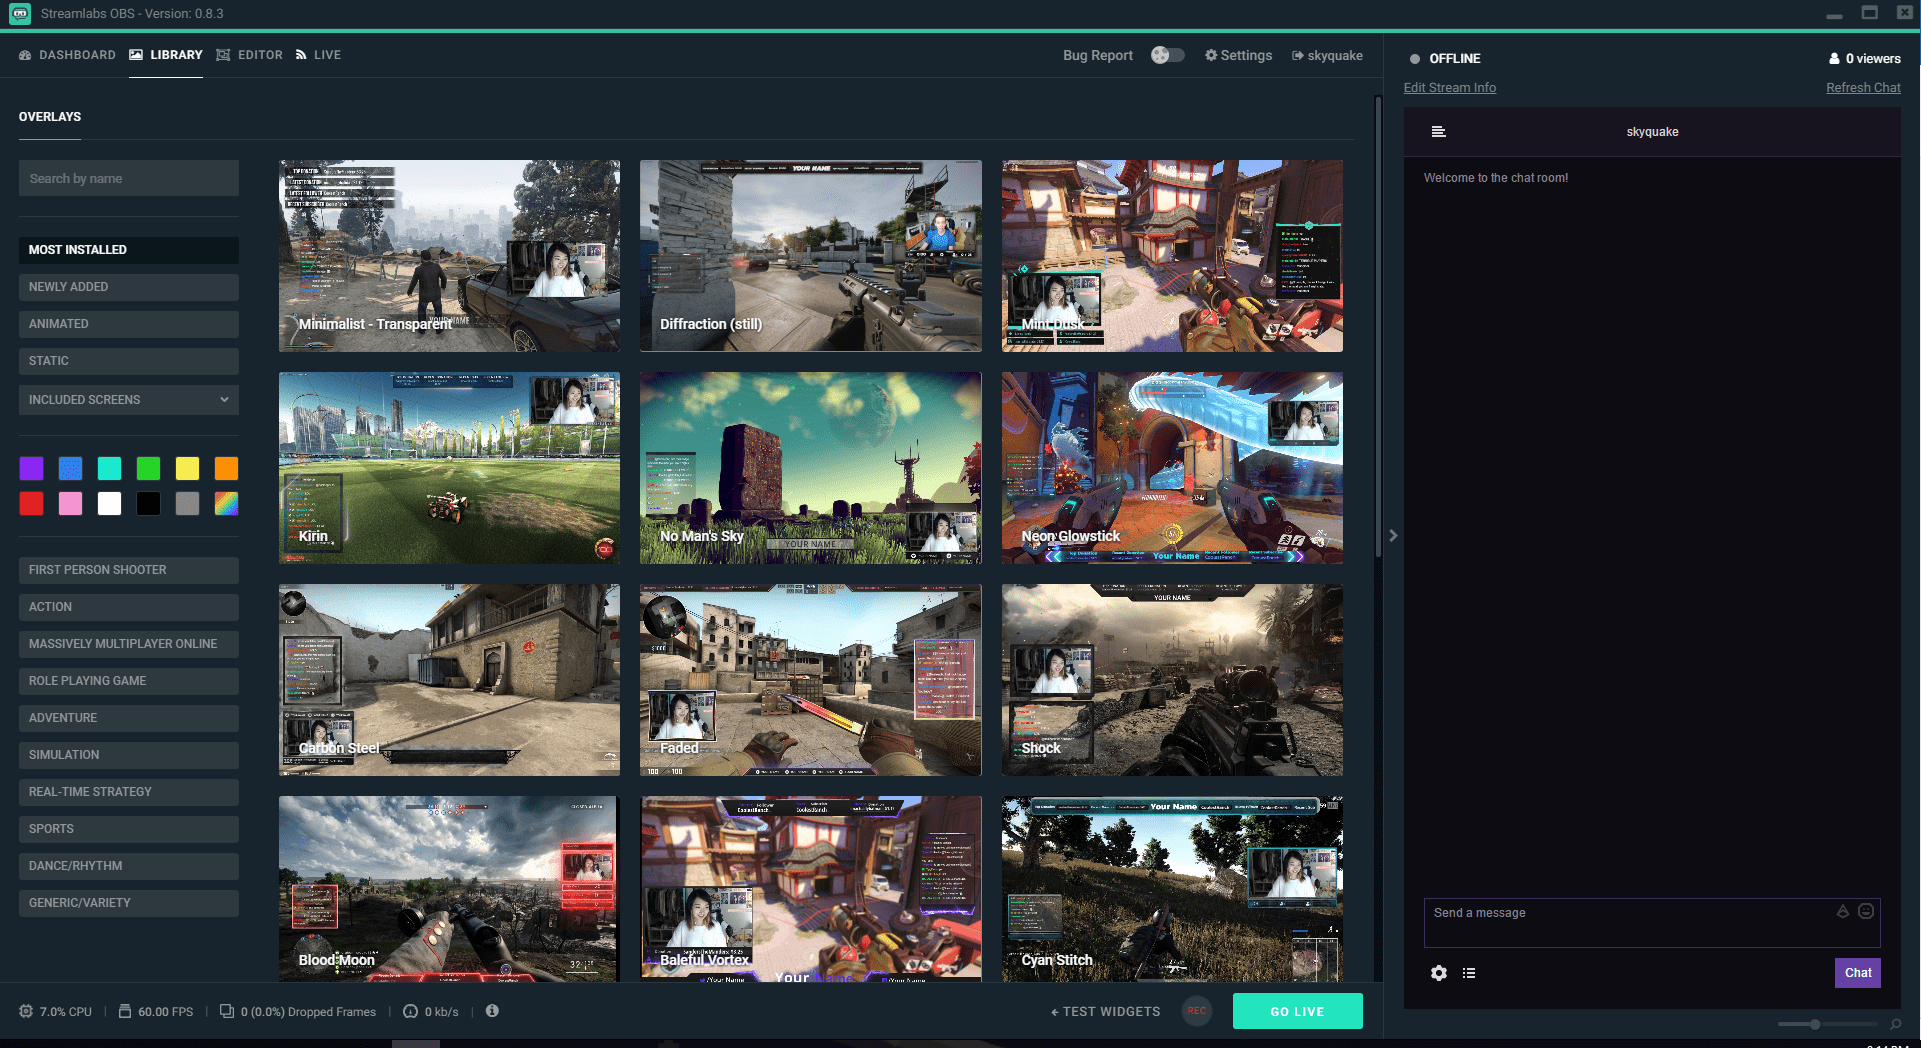 Streamlabs OBS Overlays